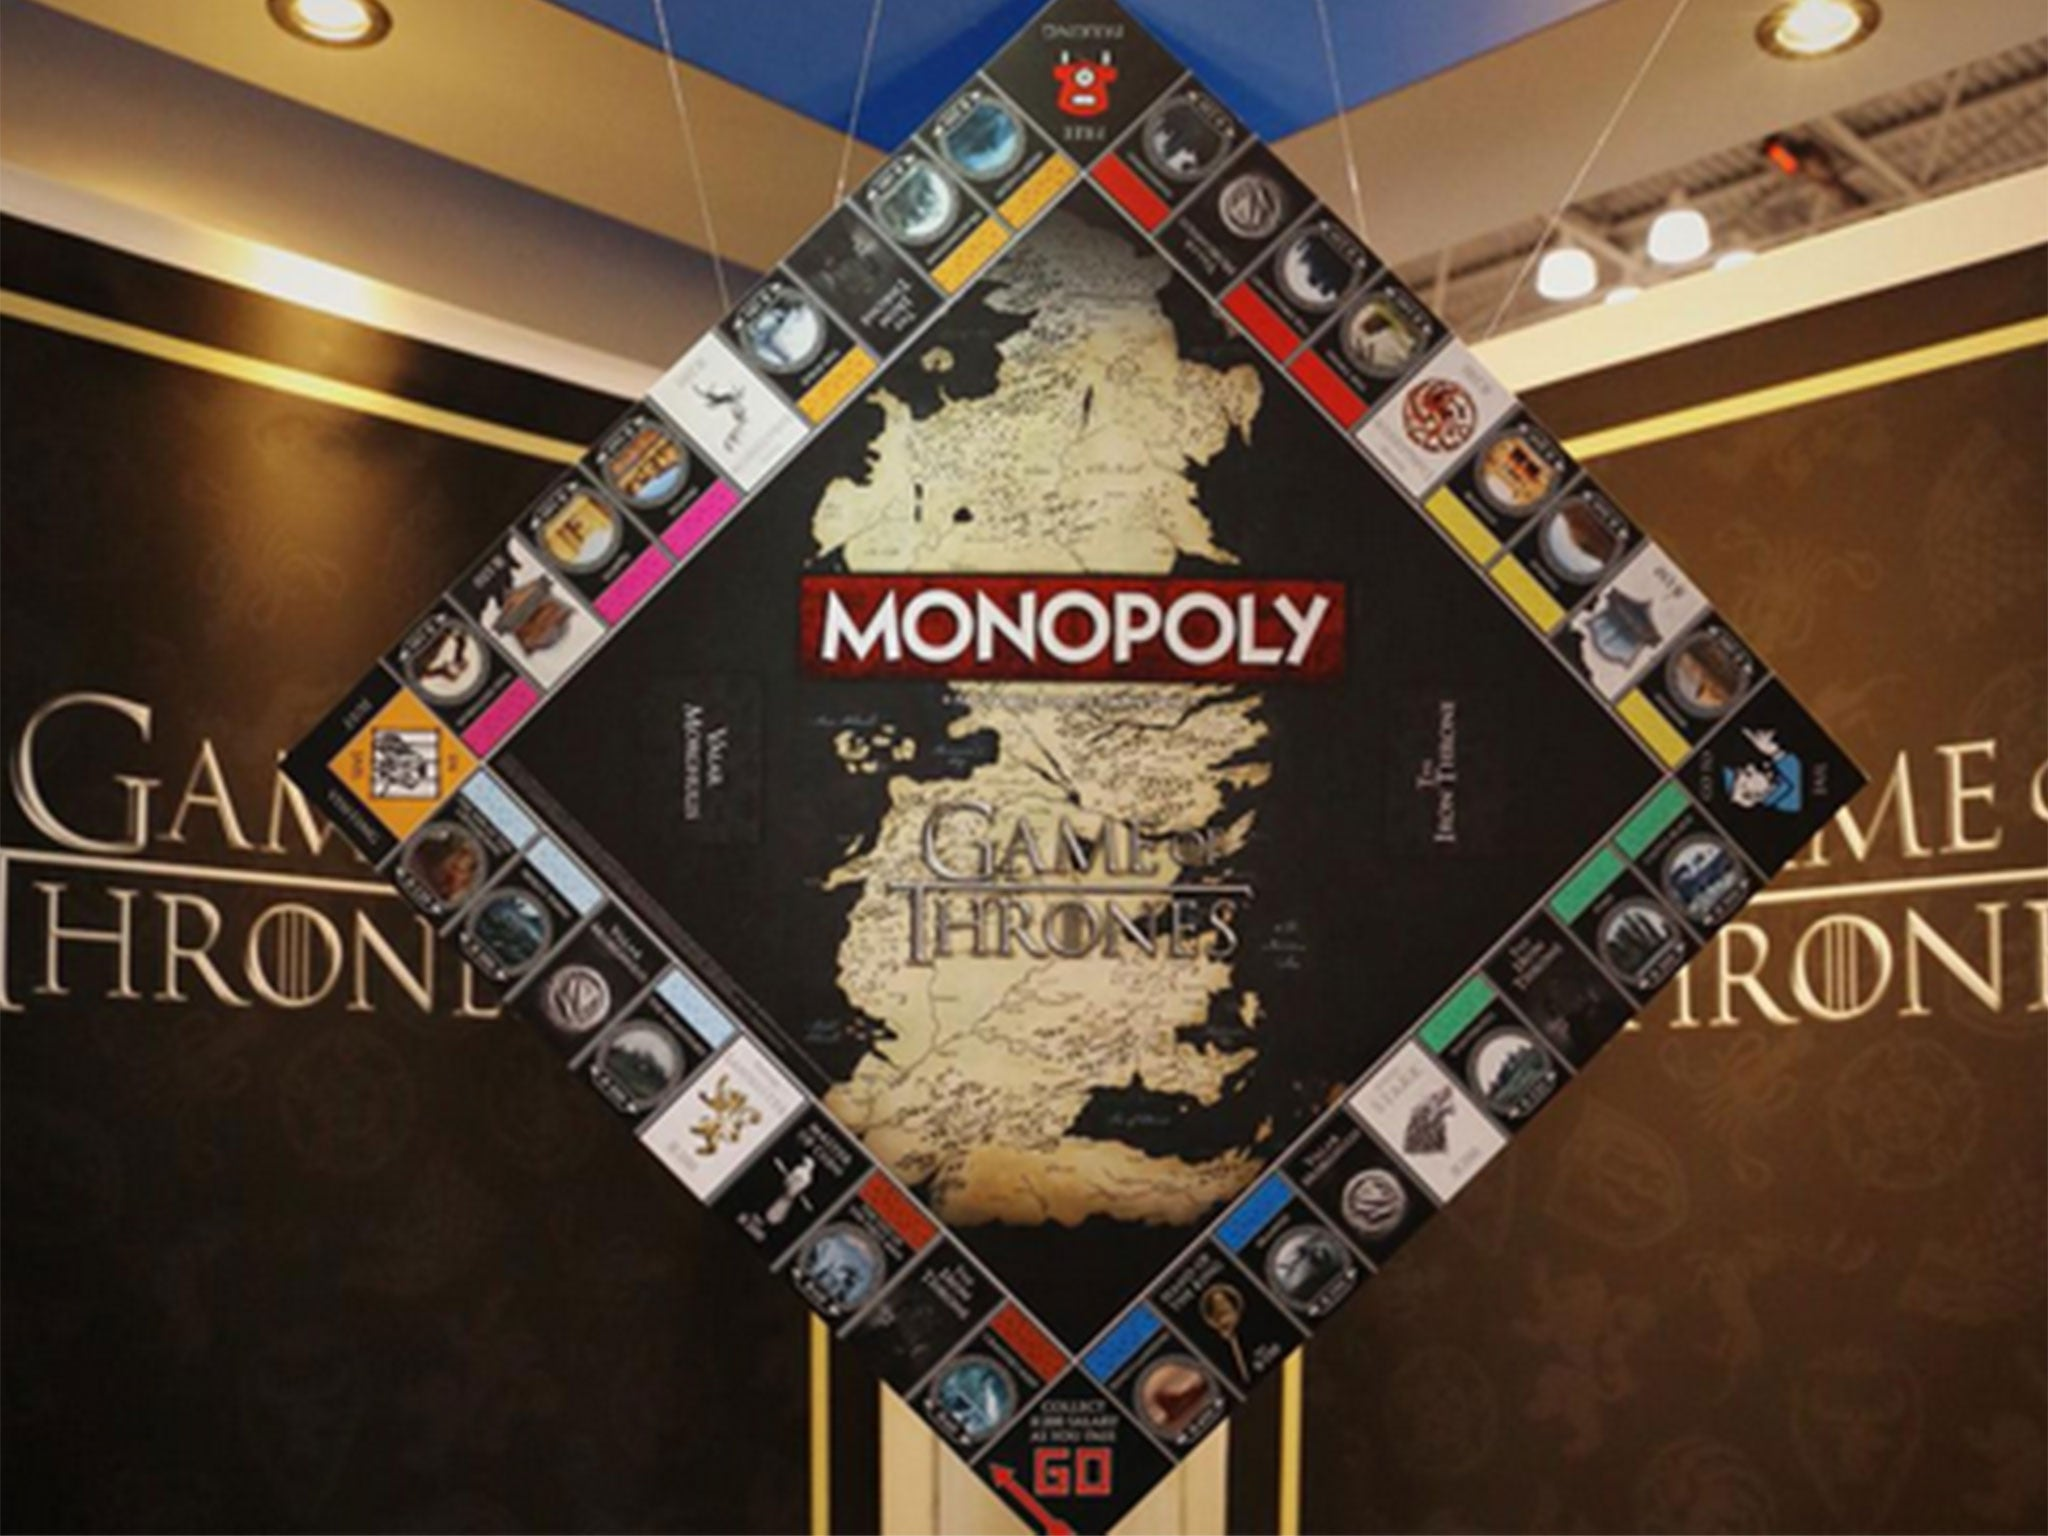 game of thrones is getting a monopoly edition news. Black Bedroom Furniture Sets. Home Design Ideas